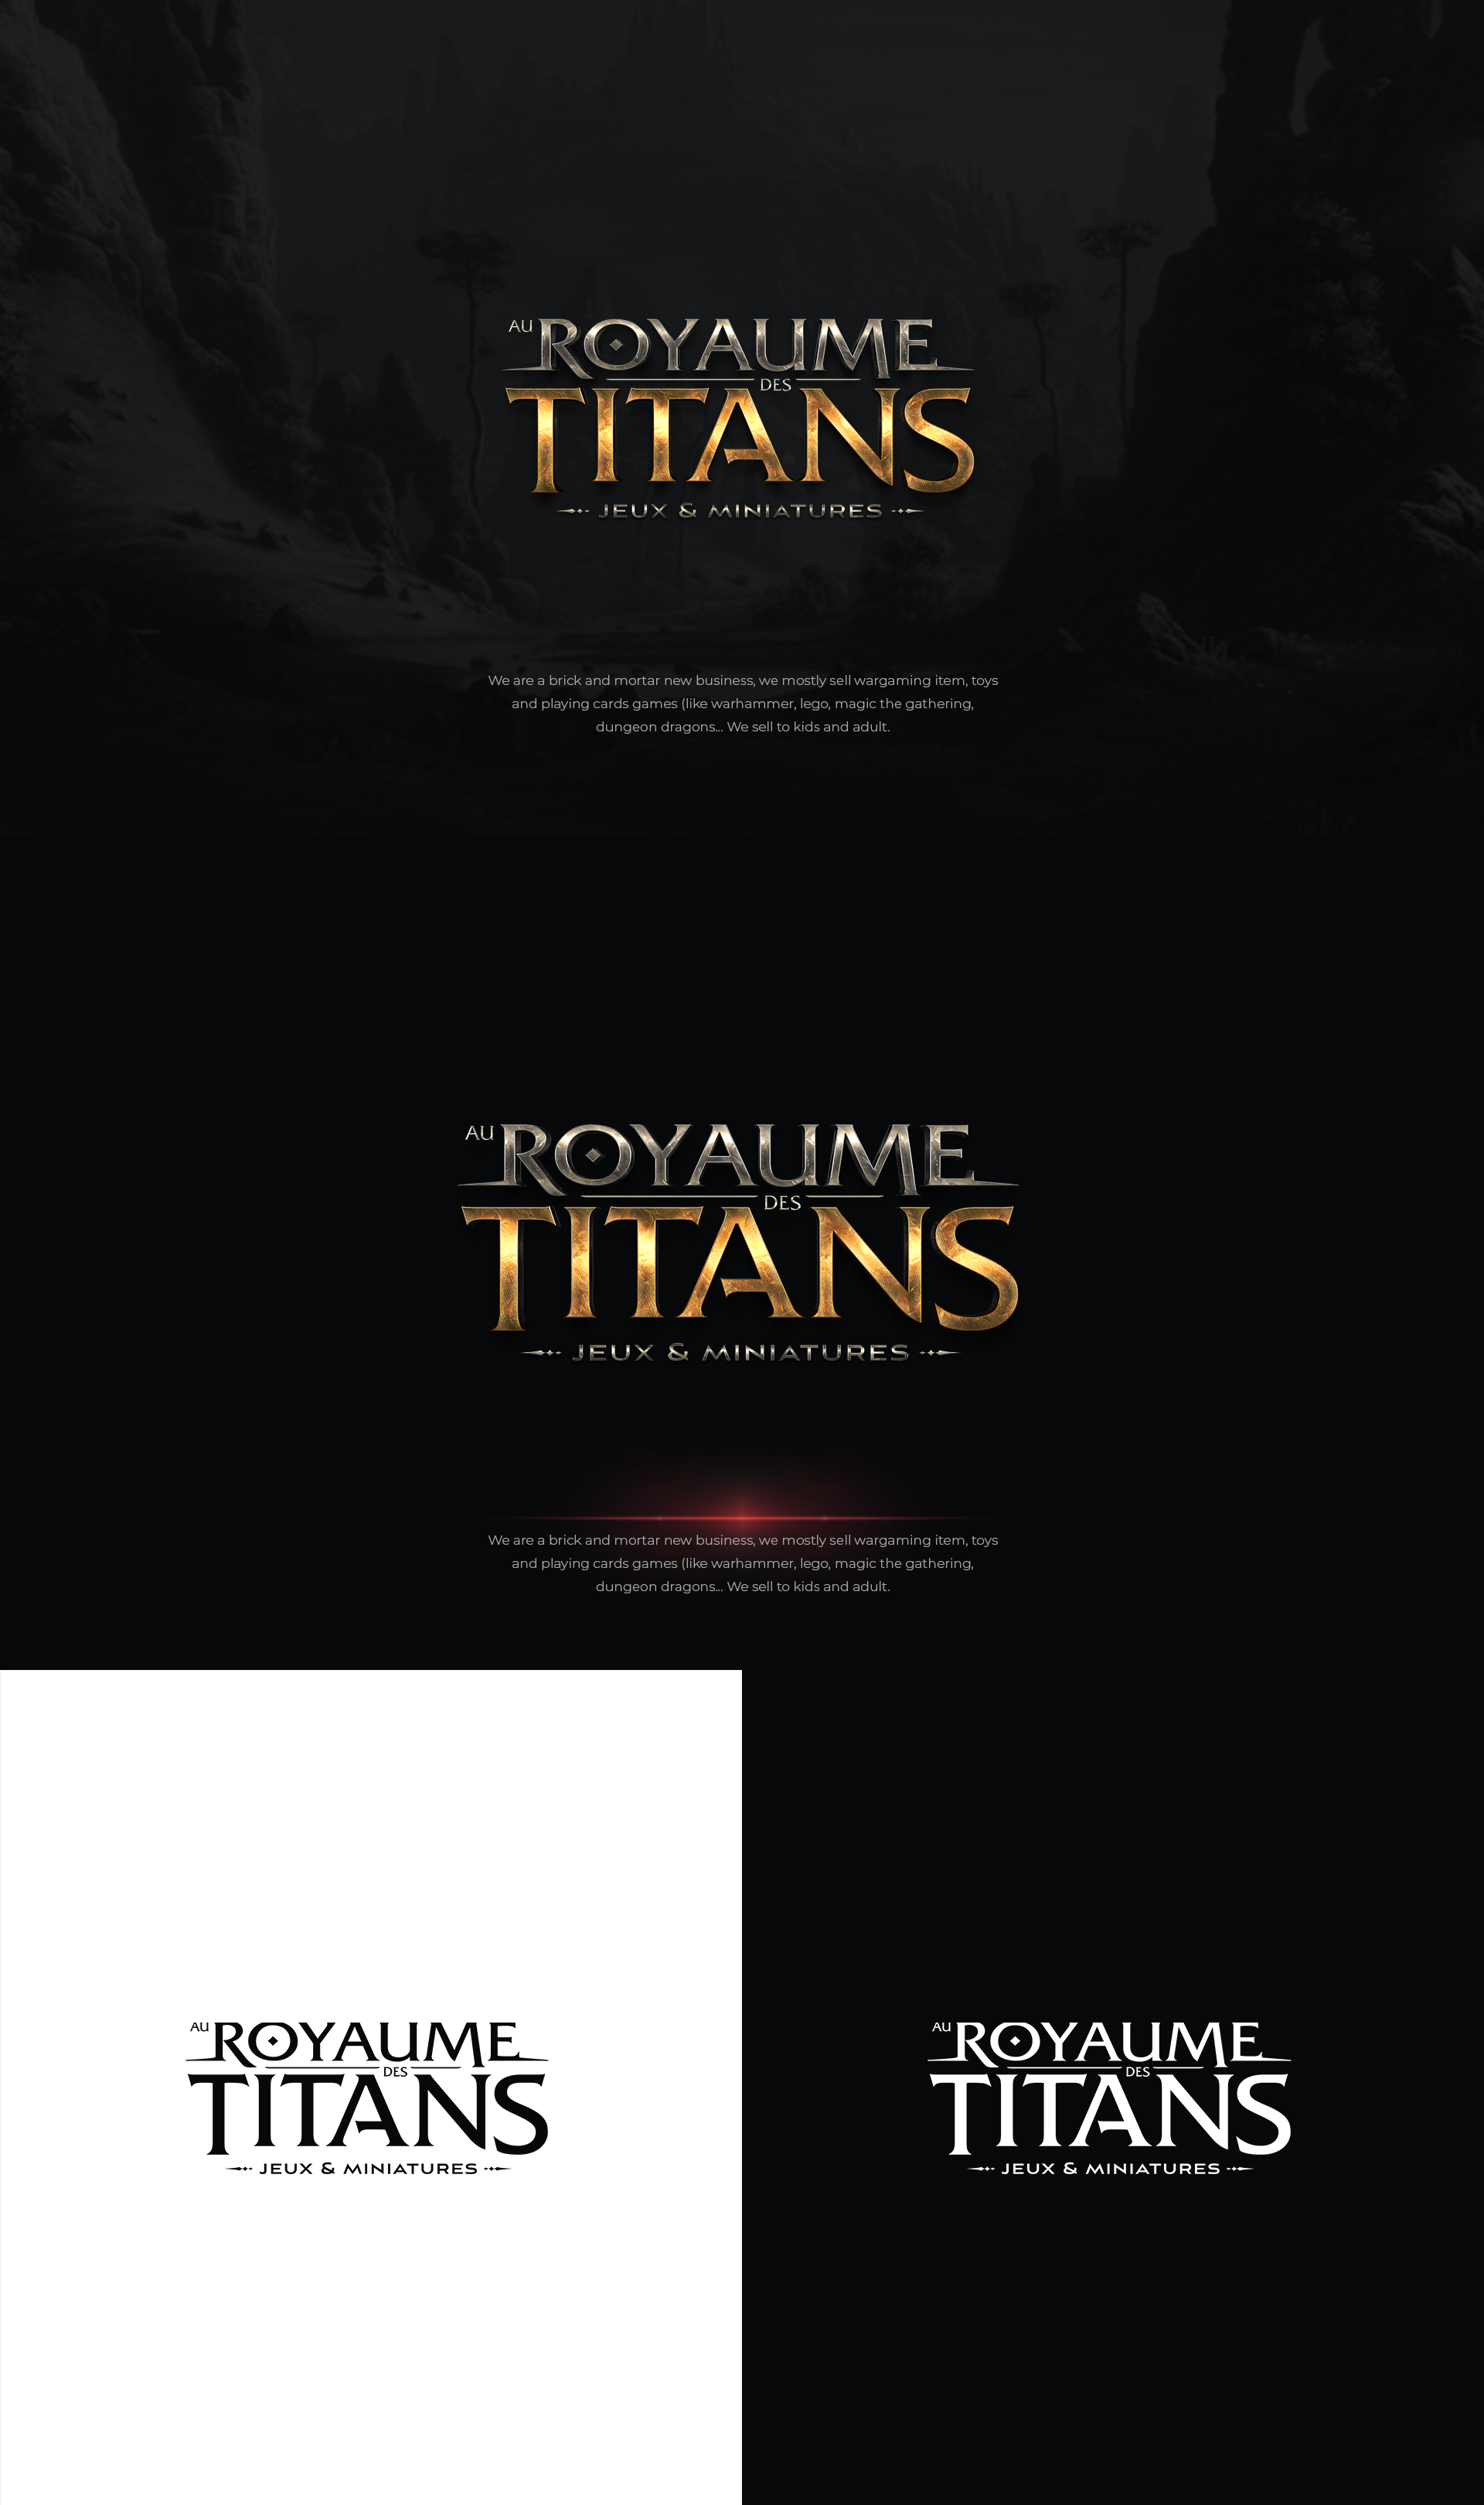 Au royaume des titans logo (kingdom of the titans)